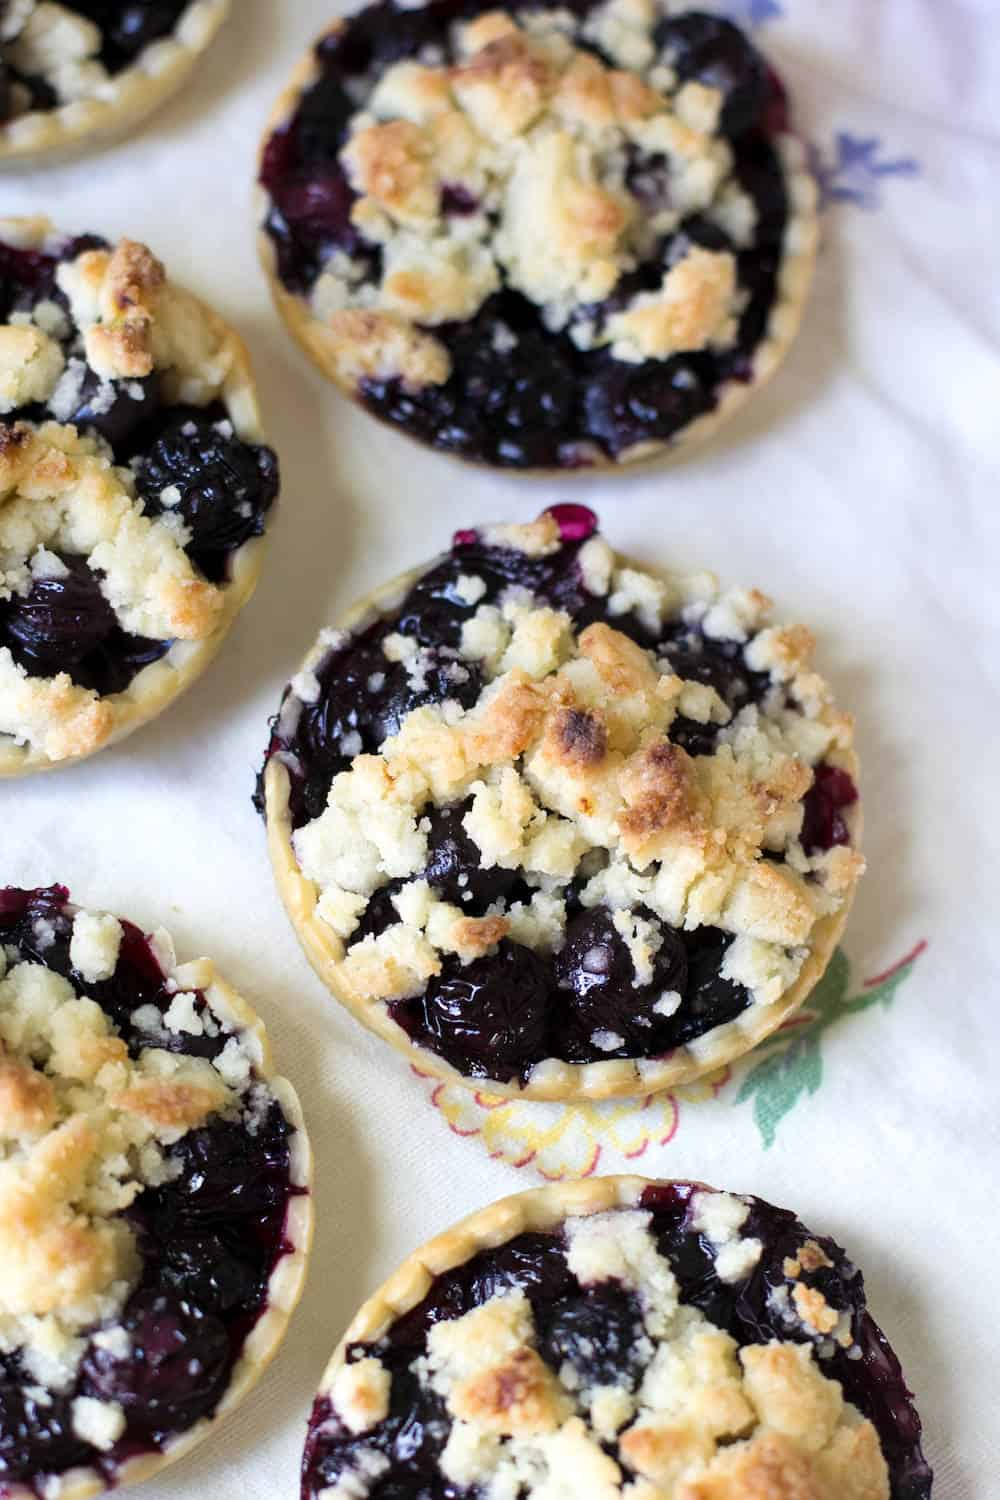 This lemon blueberry crisp recipe is perfect for summer! Make these individual pies in mason jar lids. These are so cute and are great for parties!